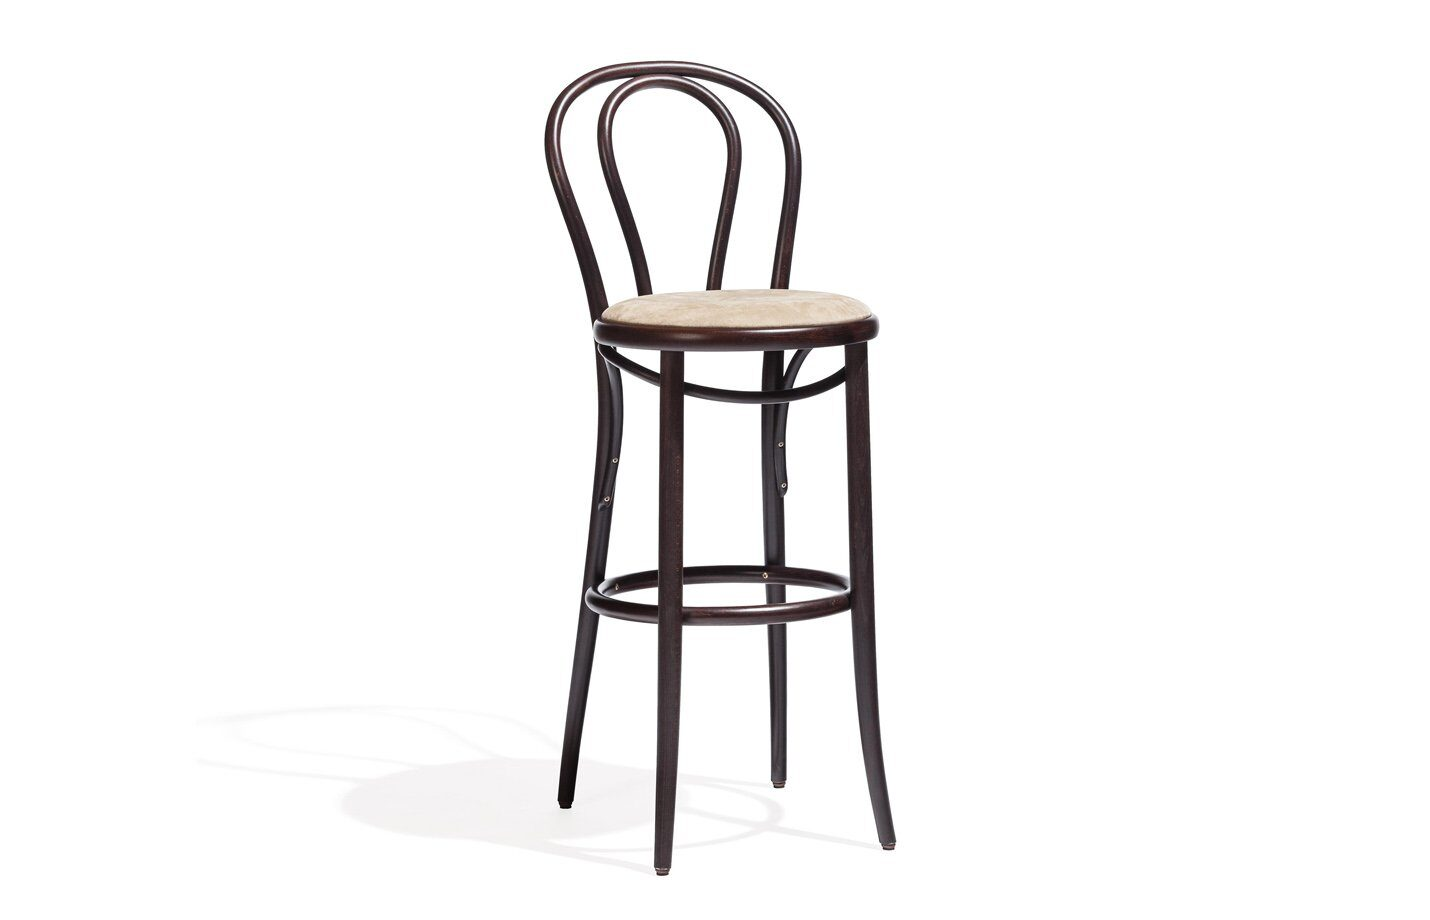 18-Barstool-Bent-wood-Upholstery-seat-Ton-02